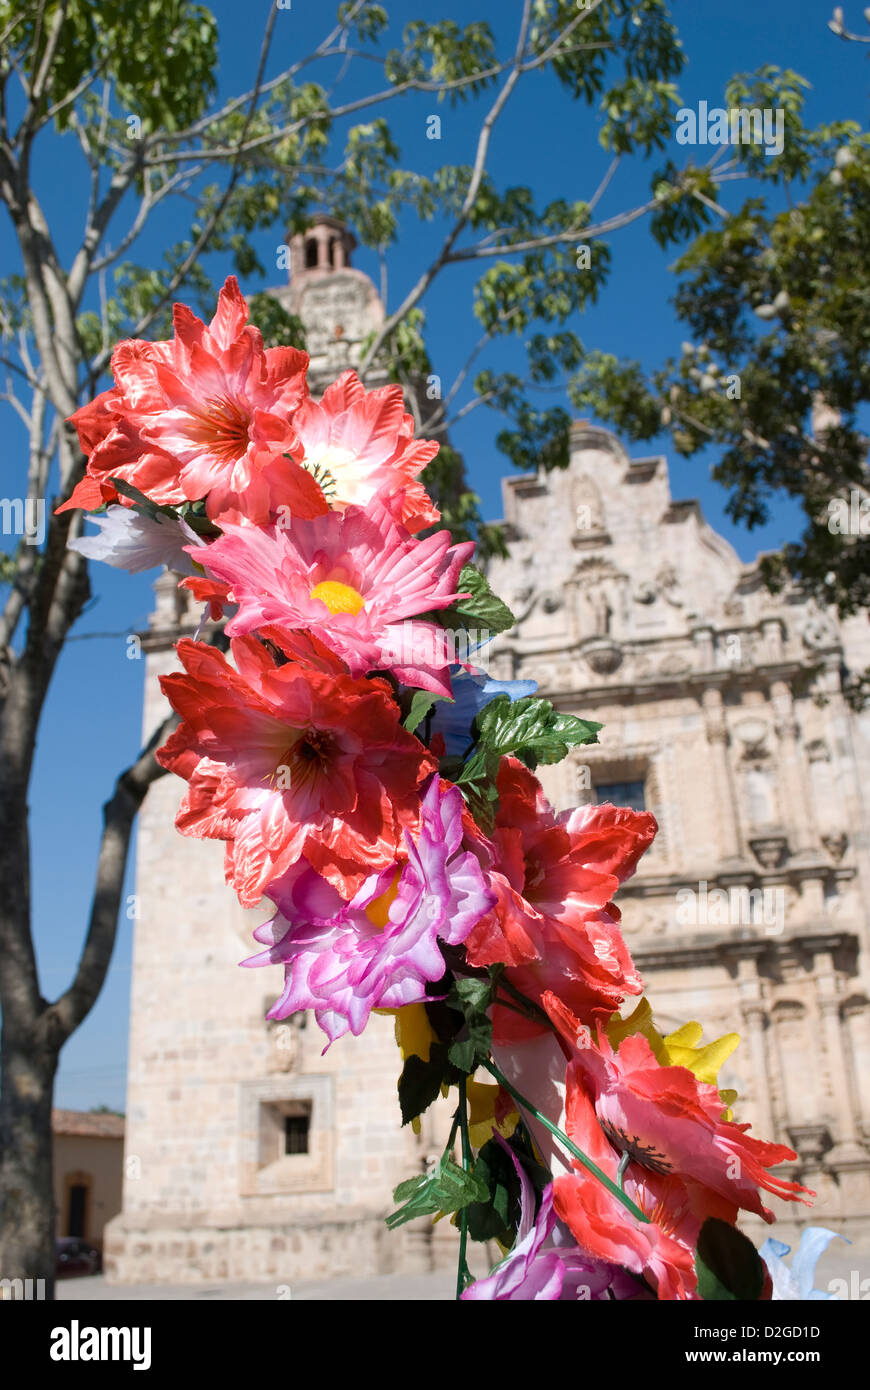 Imitation flowers on sale in a plaza in front of the Cathedral in Concordia,Sinaloa State, Mexico. - Stock Image